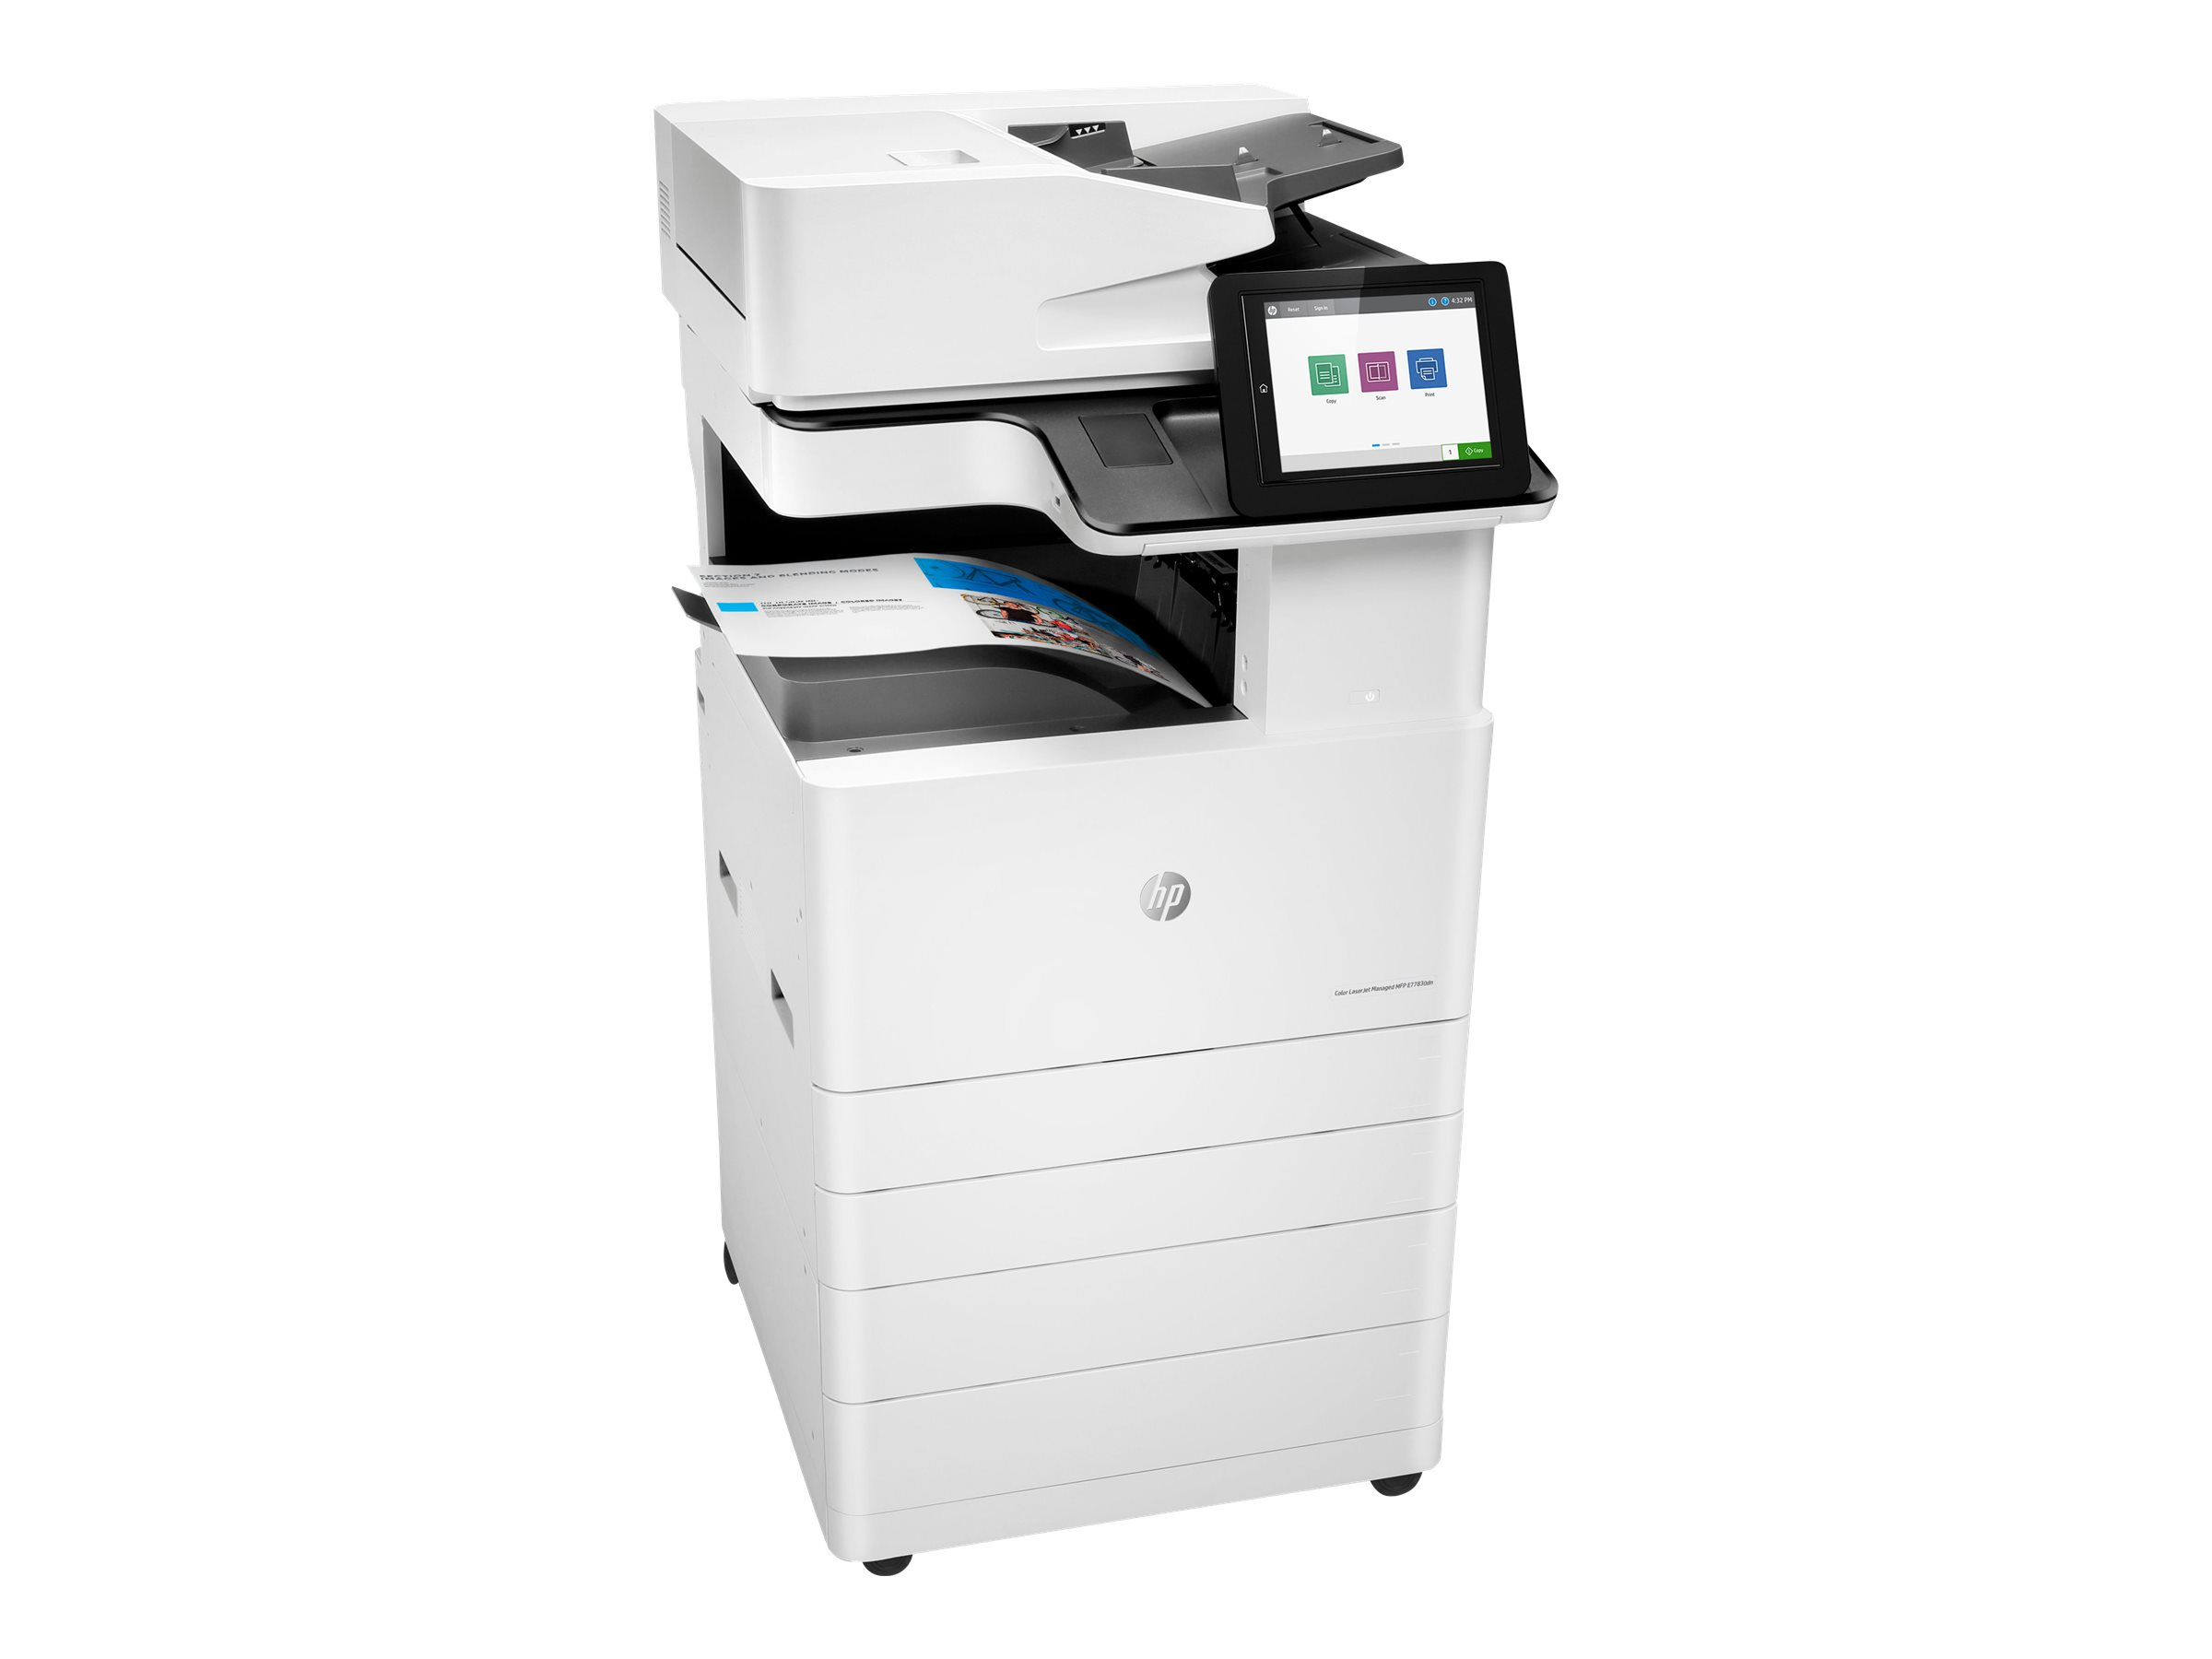 Copieur Color LaserJet Managed MFP HP E77830dn - vitesse 30ppm vue 3/4 gauche